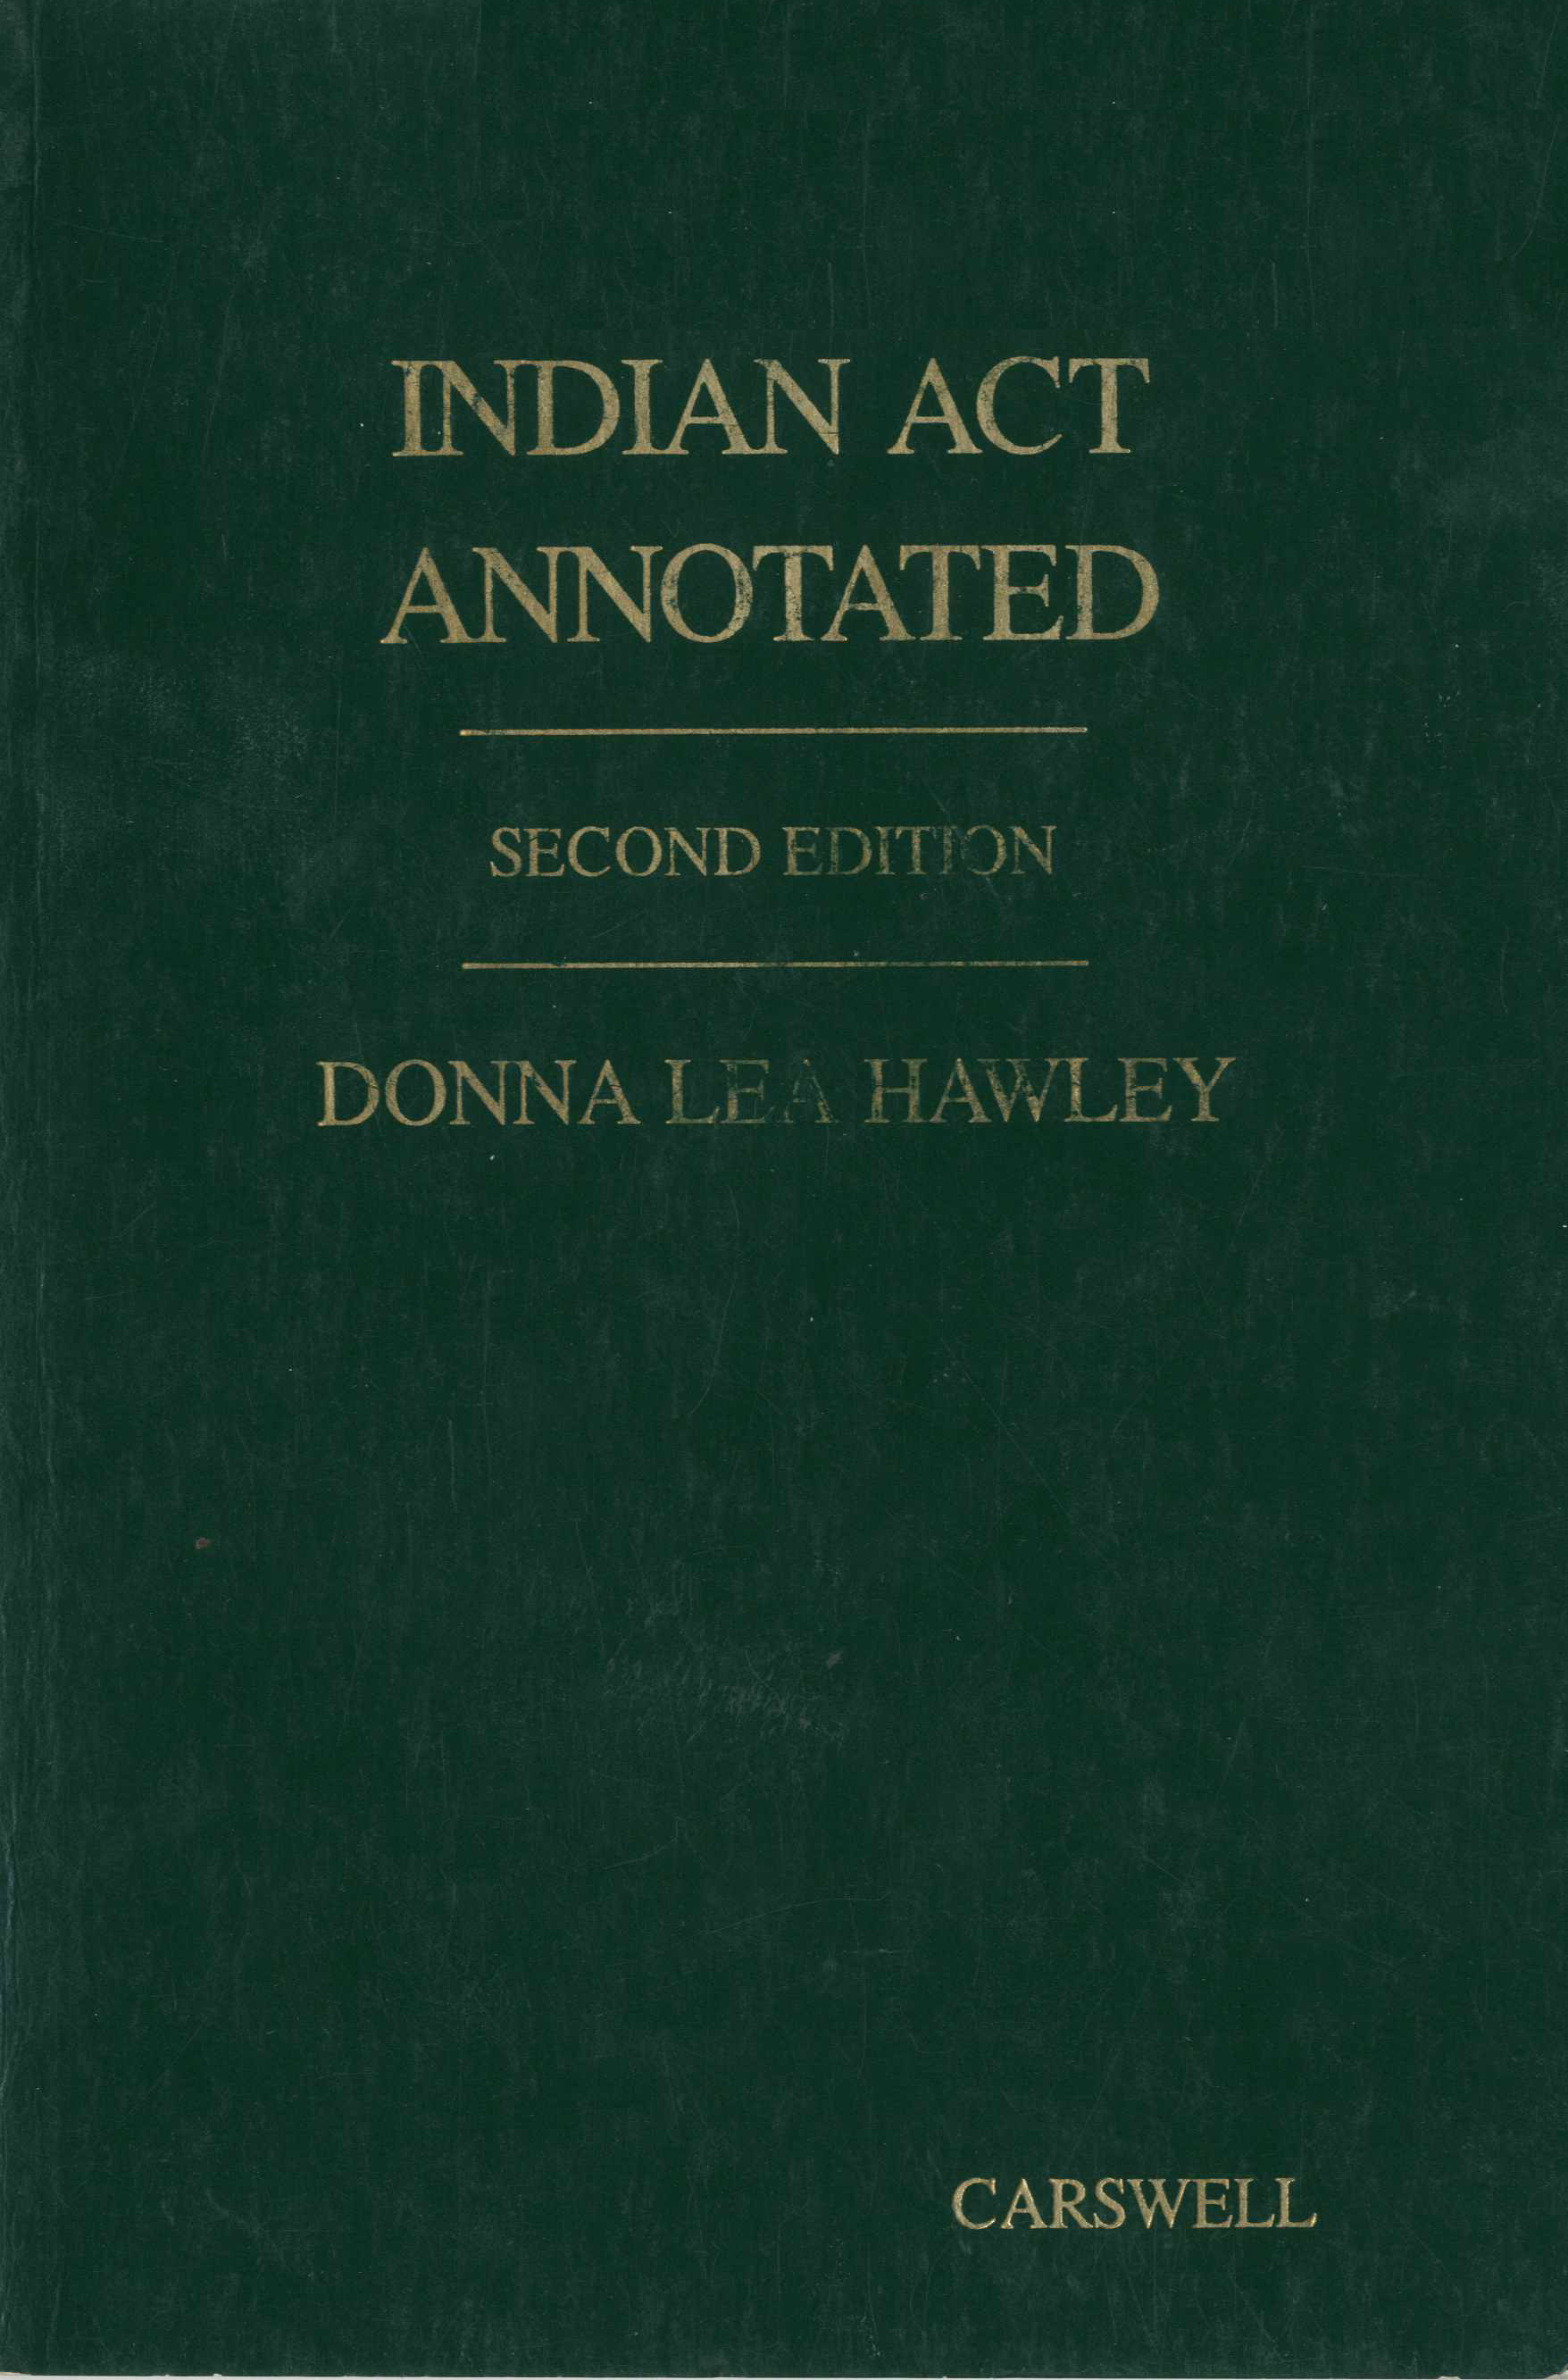 The Indian Act Annotated, Second Edition Image